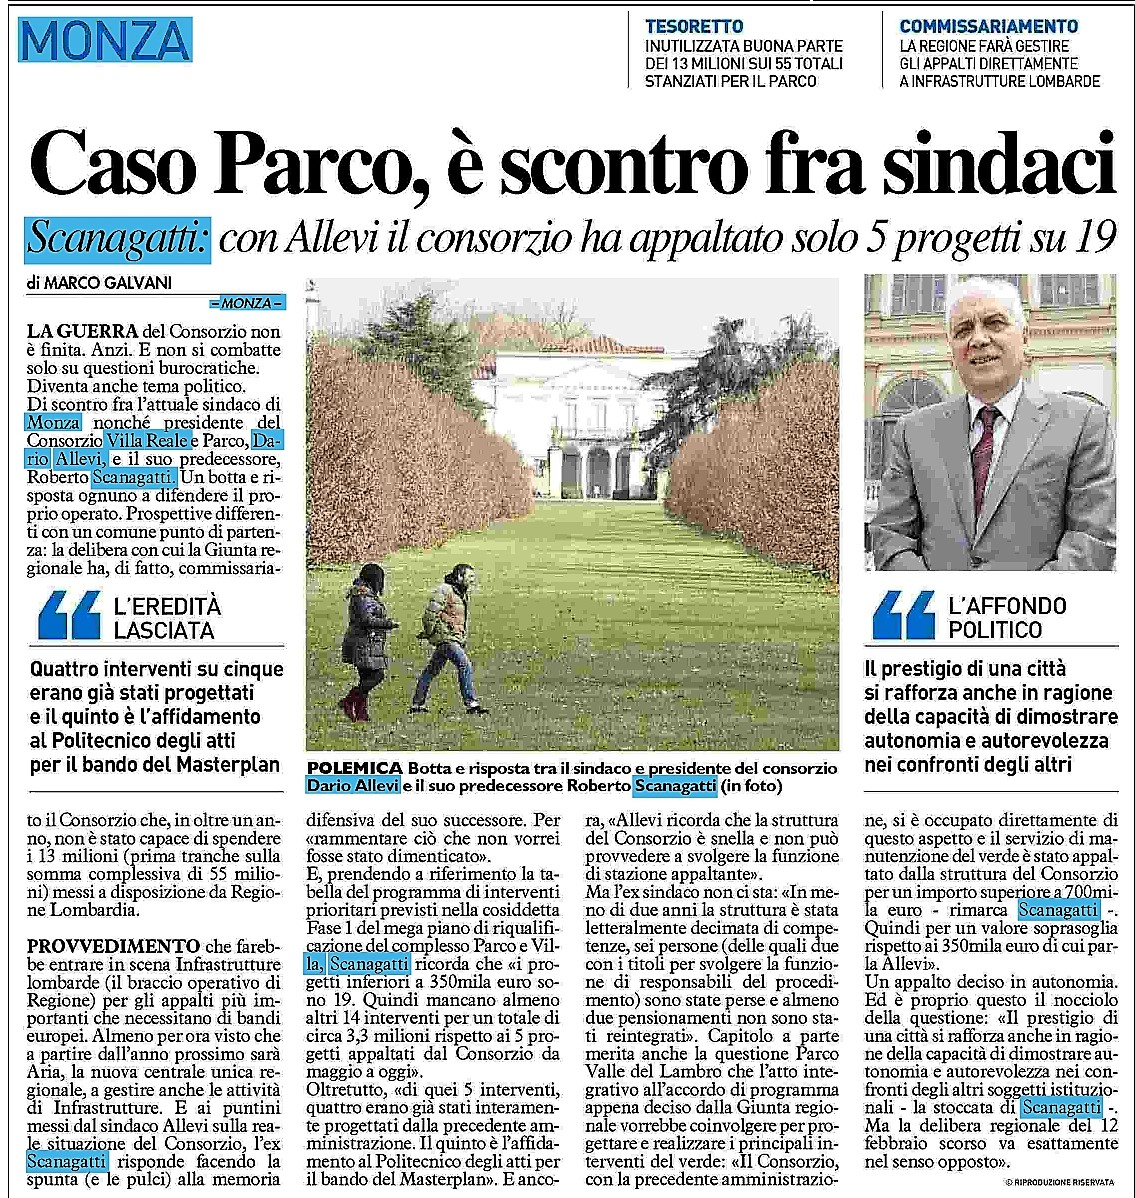 Giorno caso parco scontro sindaci pages to jpg 0002